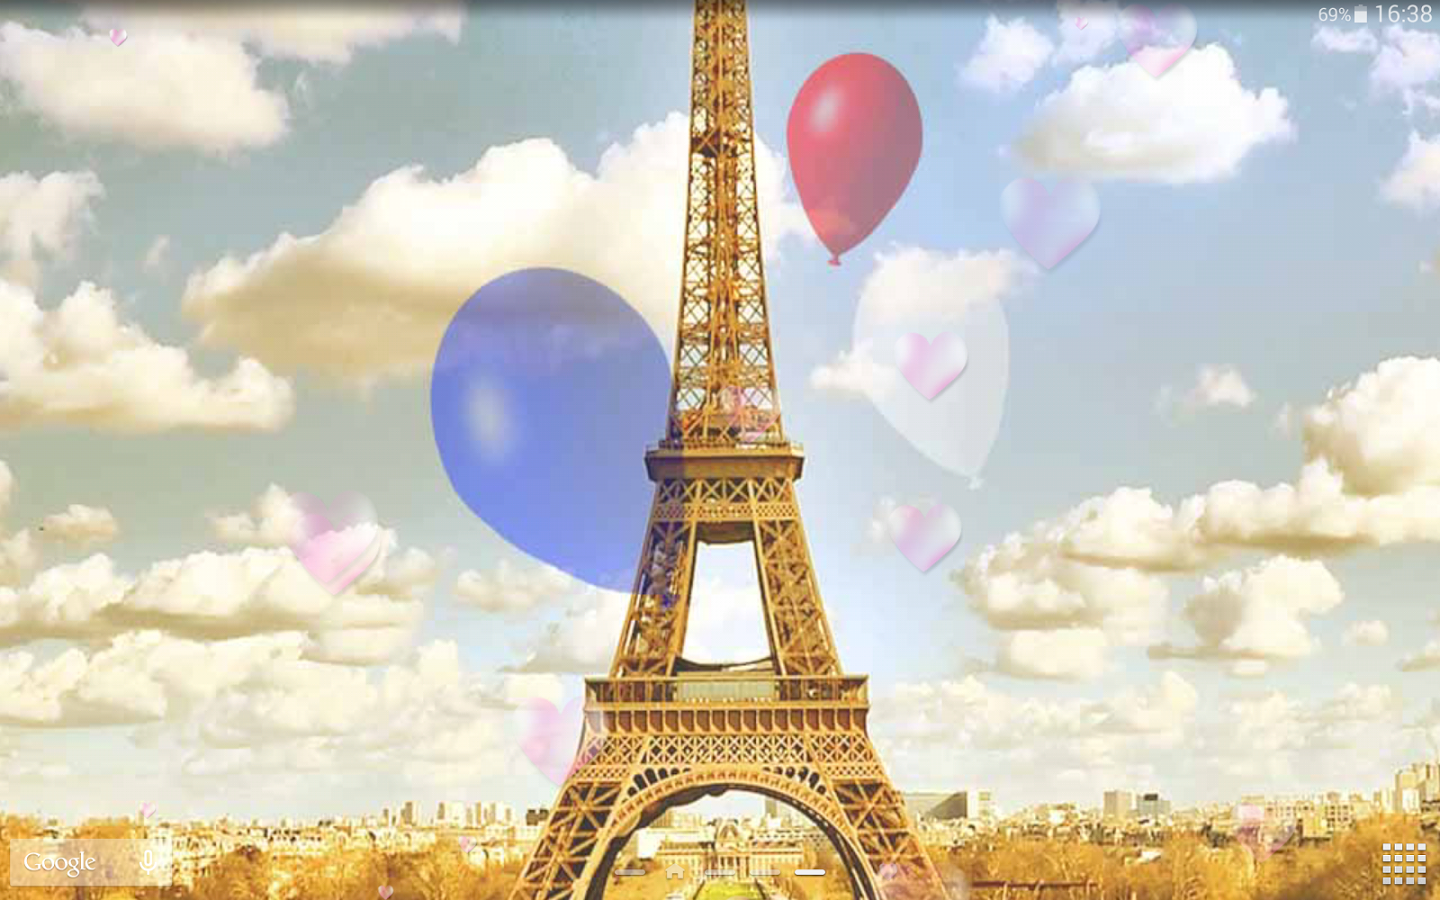 Paris HD Wallpapers, 1538.53 Kb, Jackson Tejada